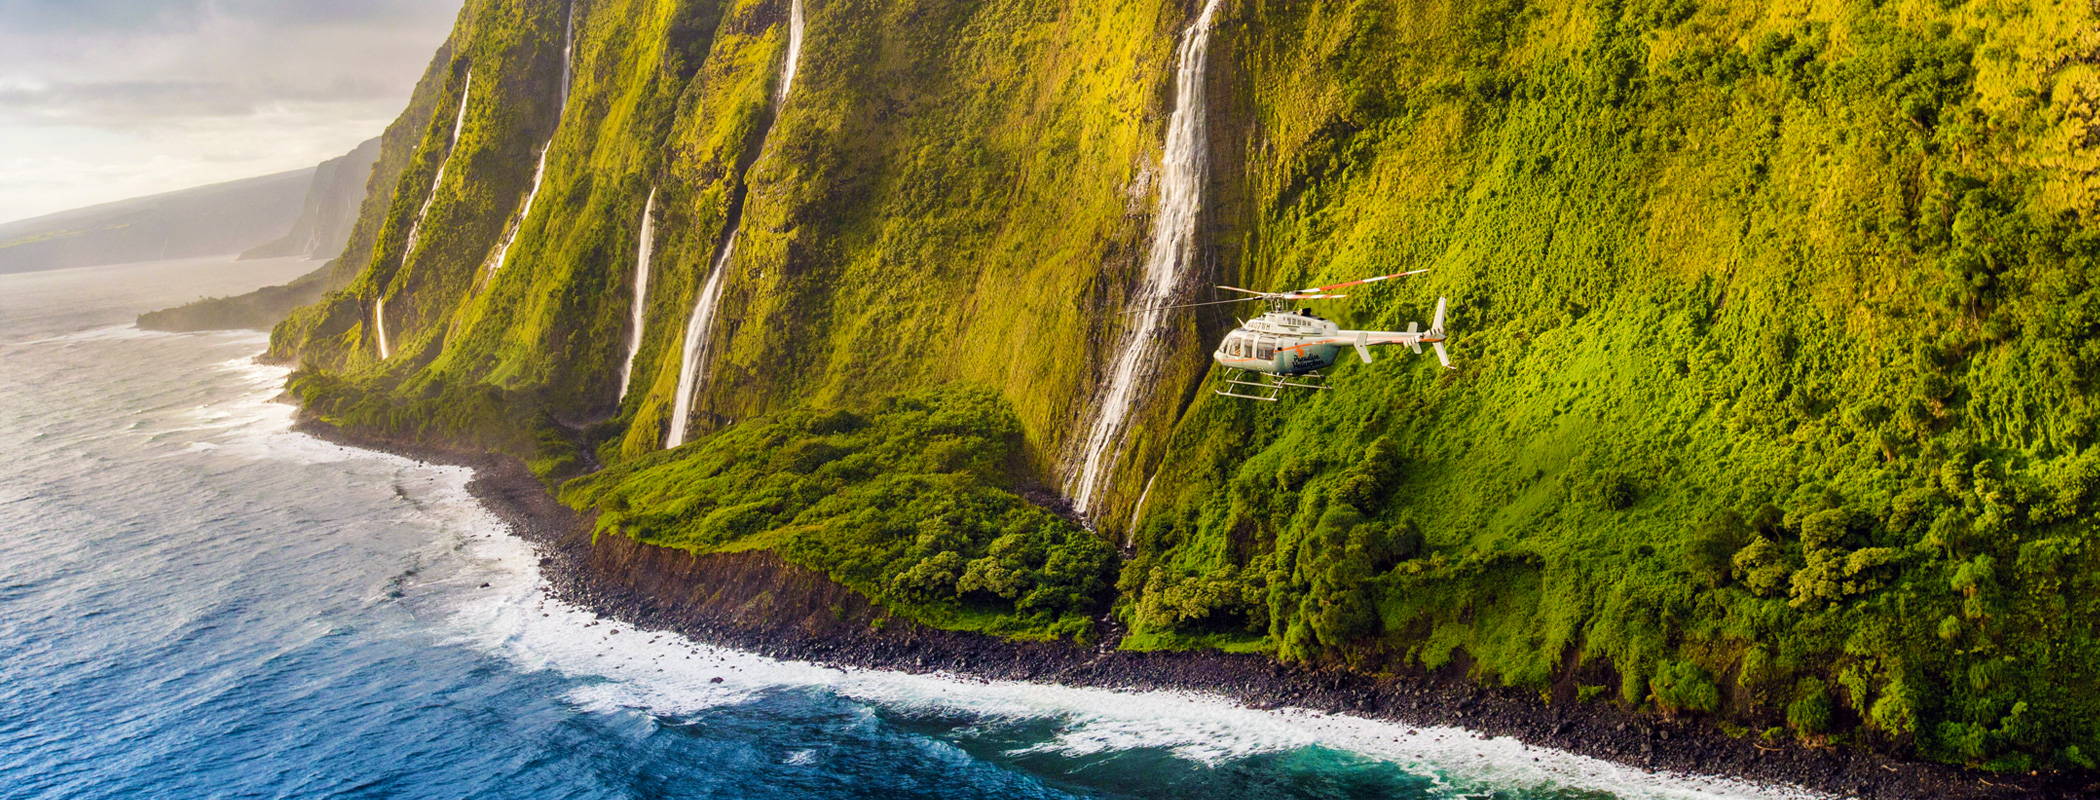 helicopter_tour_flying_over_bigisland_hawaii